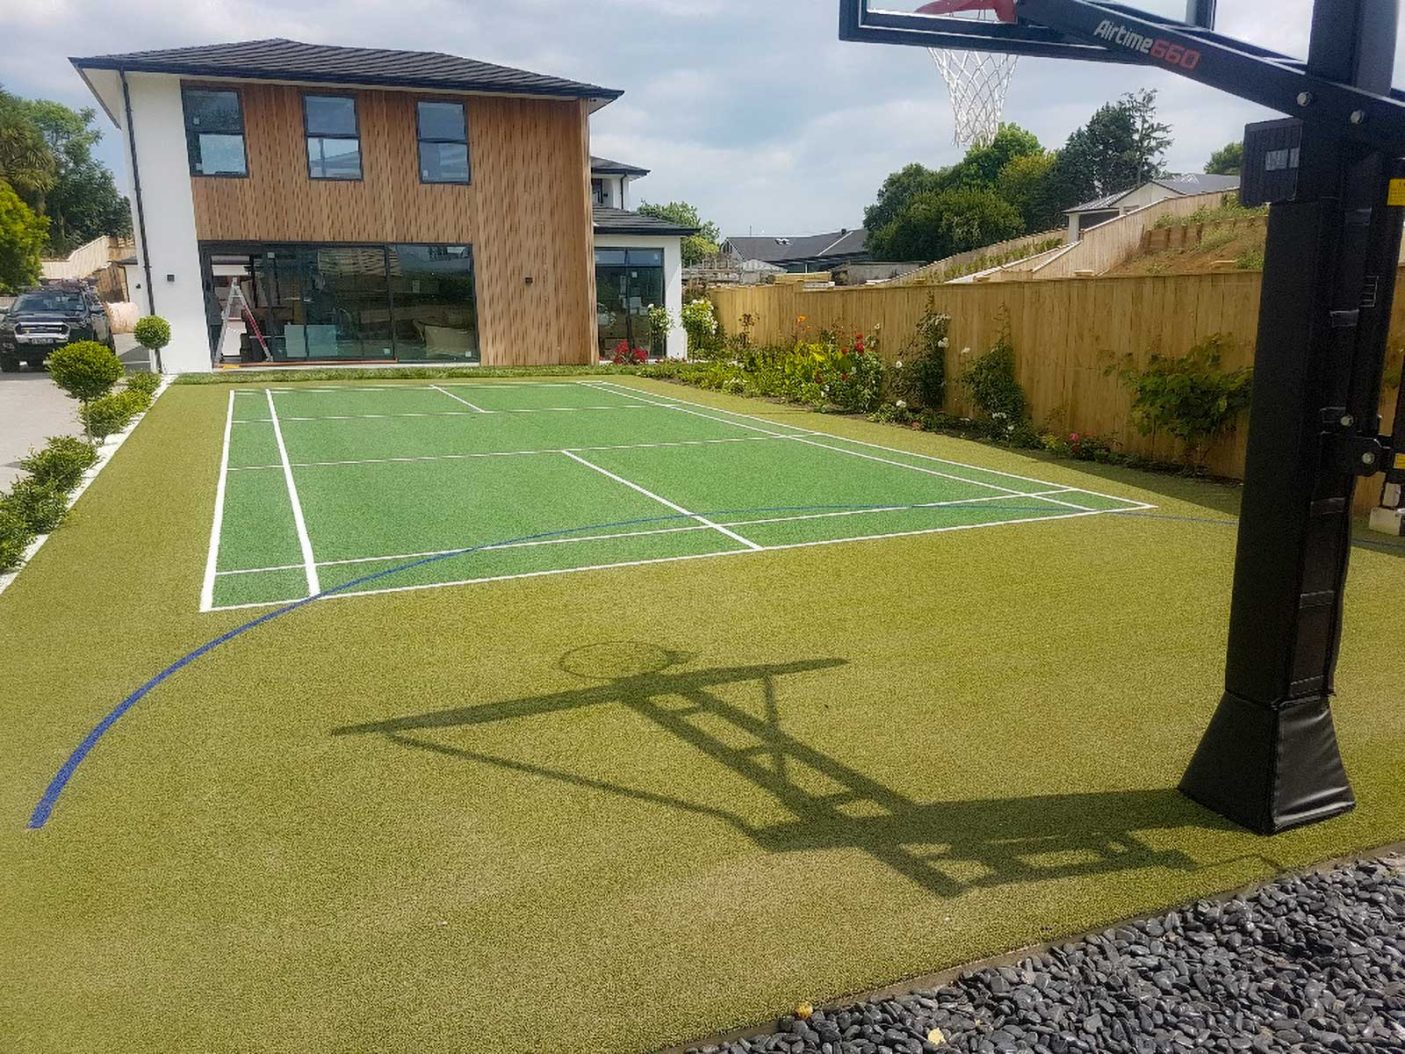 Patu Badminton Court synthetic turf